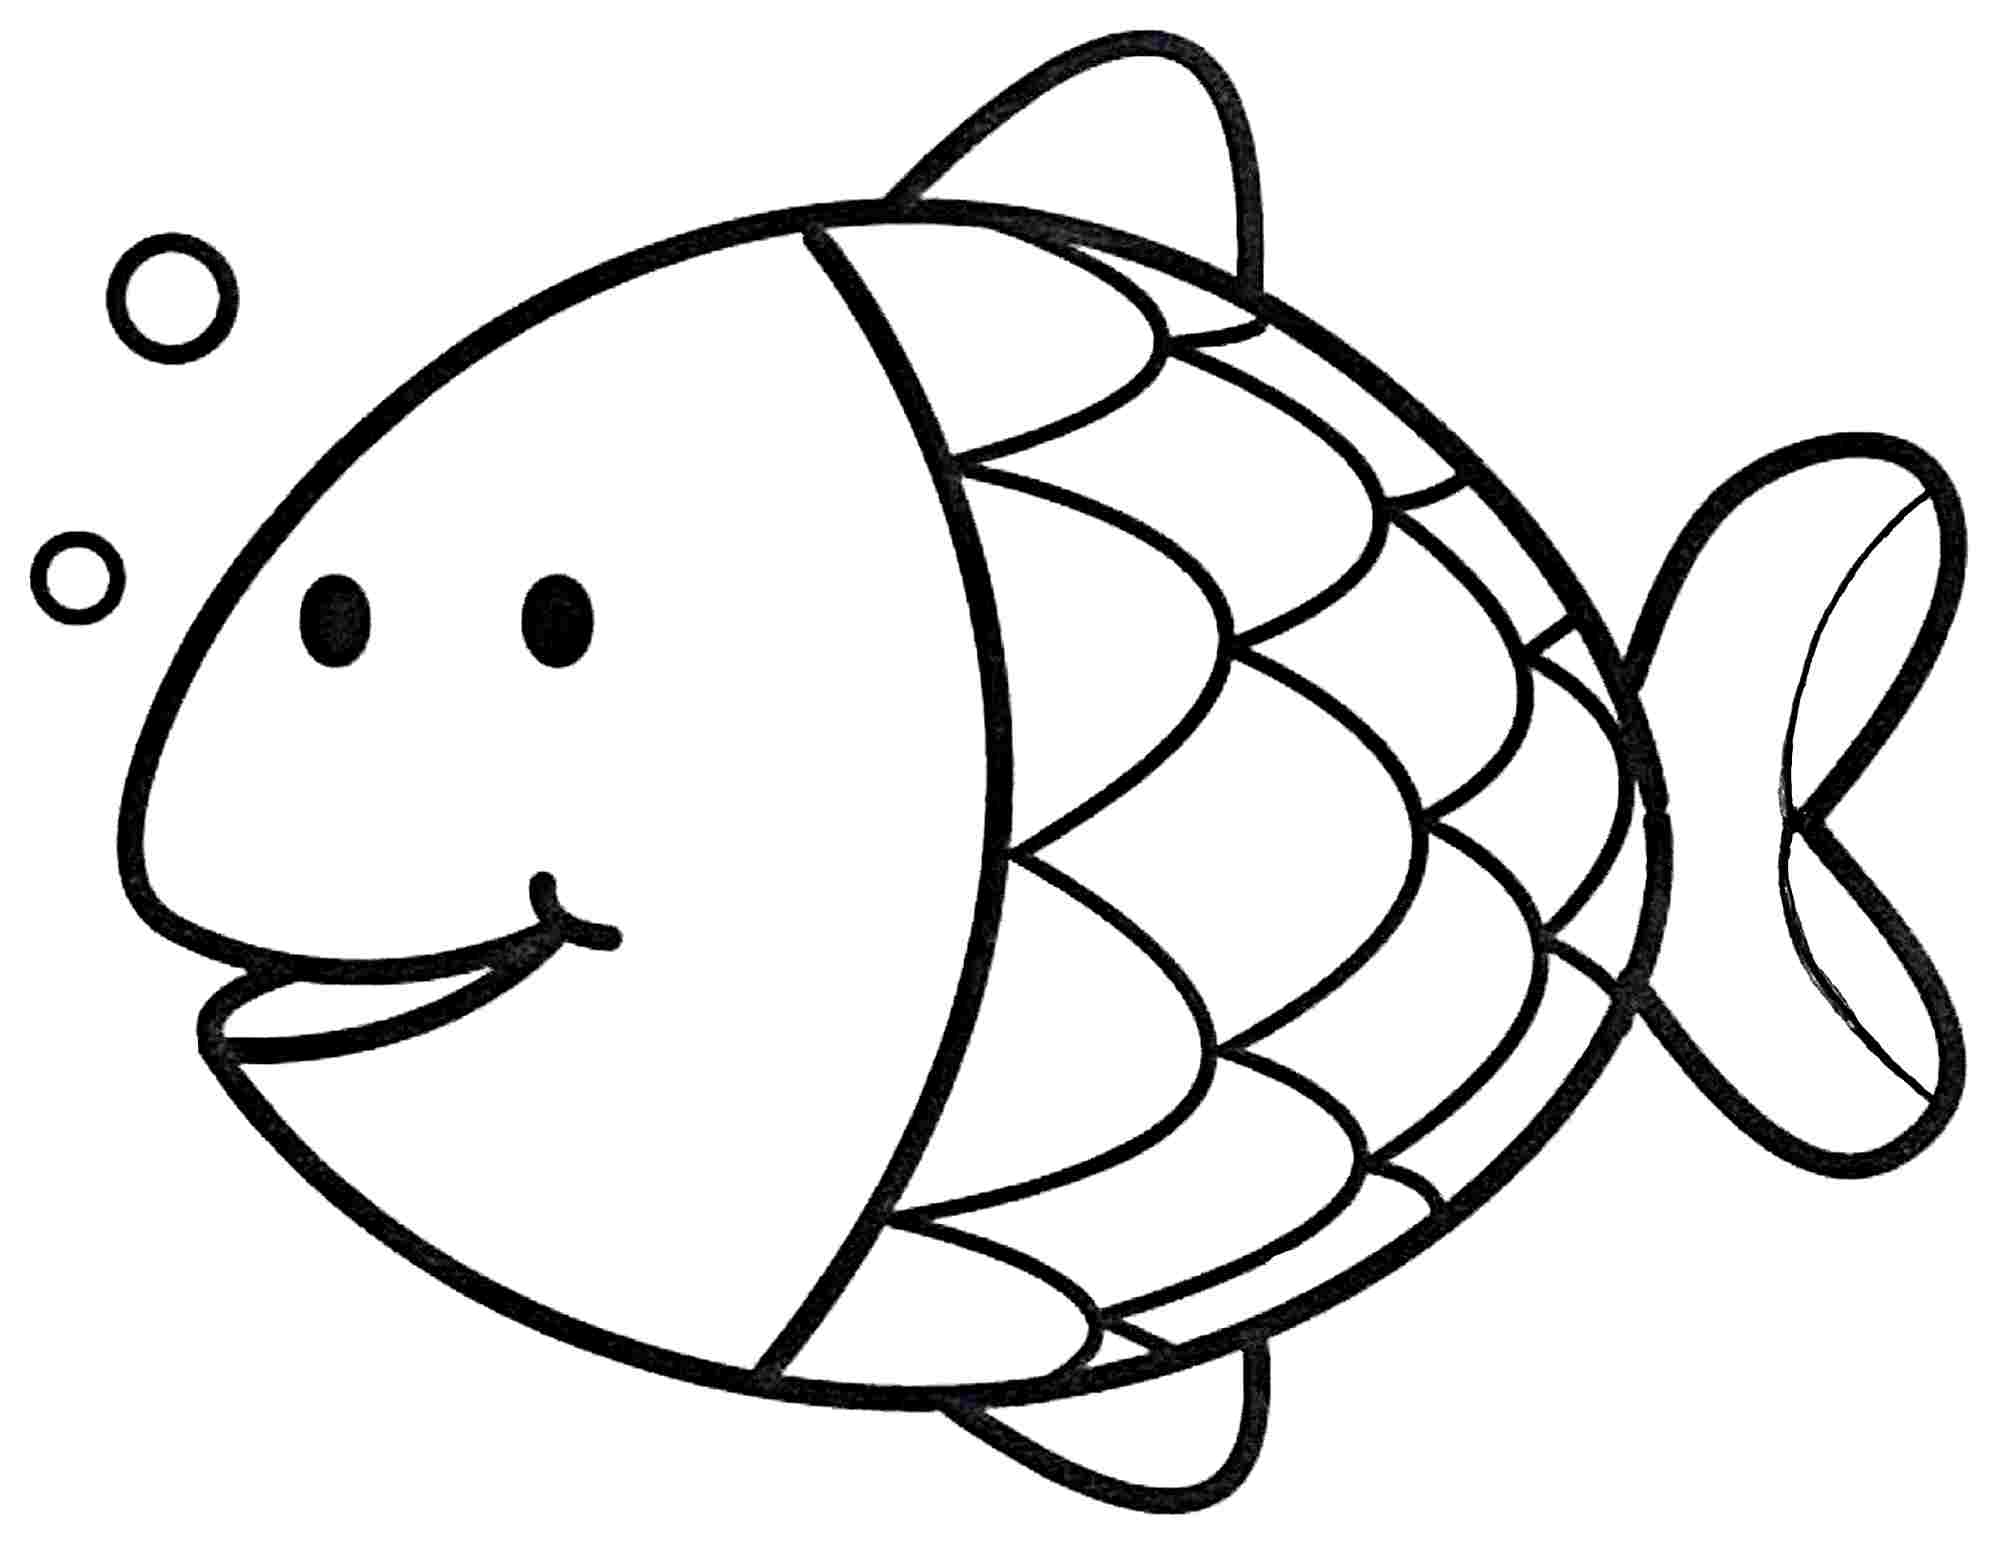 2000x1546 Coloring Pages Fish Coloring Pages For Preschoolers Coloring